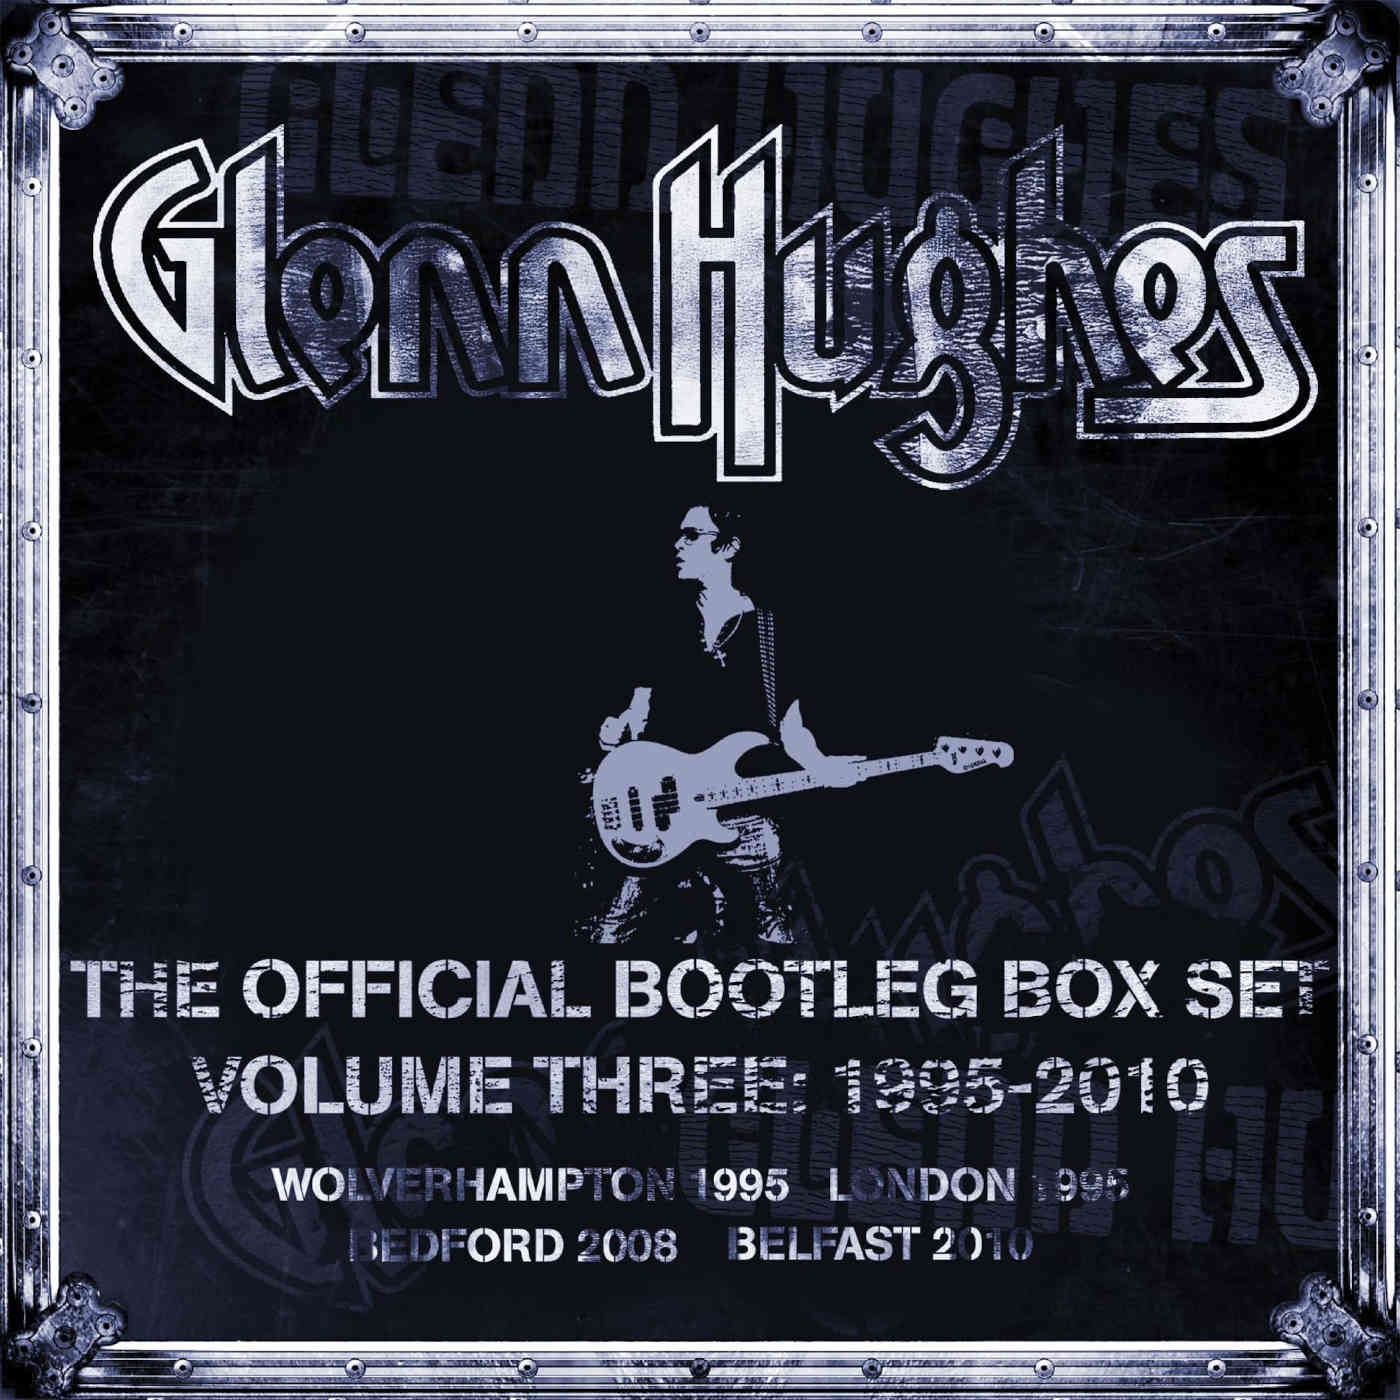 The Official Bootleg Box Set – Volume Three 1995-2010, 6CD Boxset